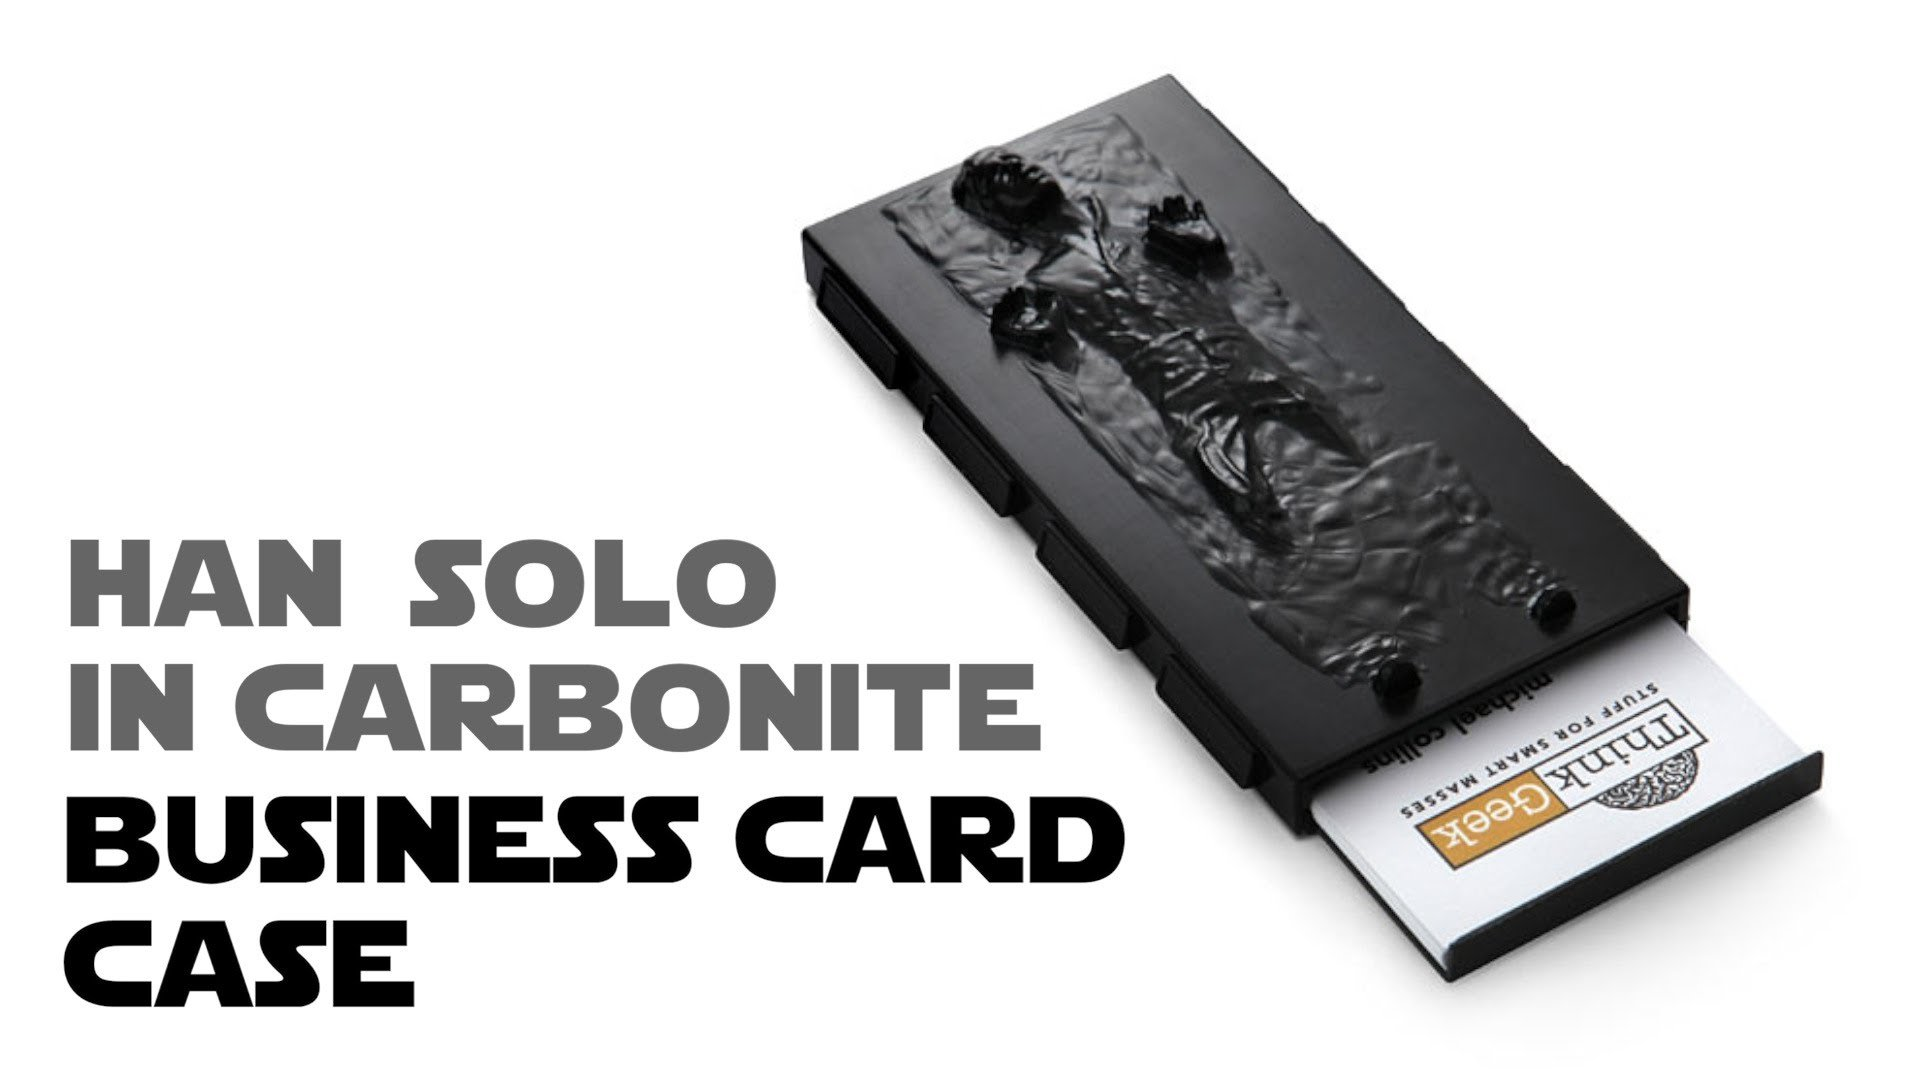 Han Solo in Carbonite Business Card Holder